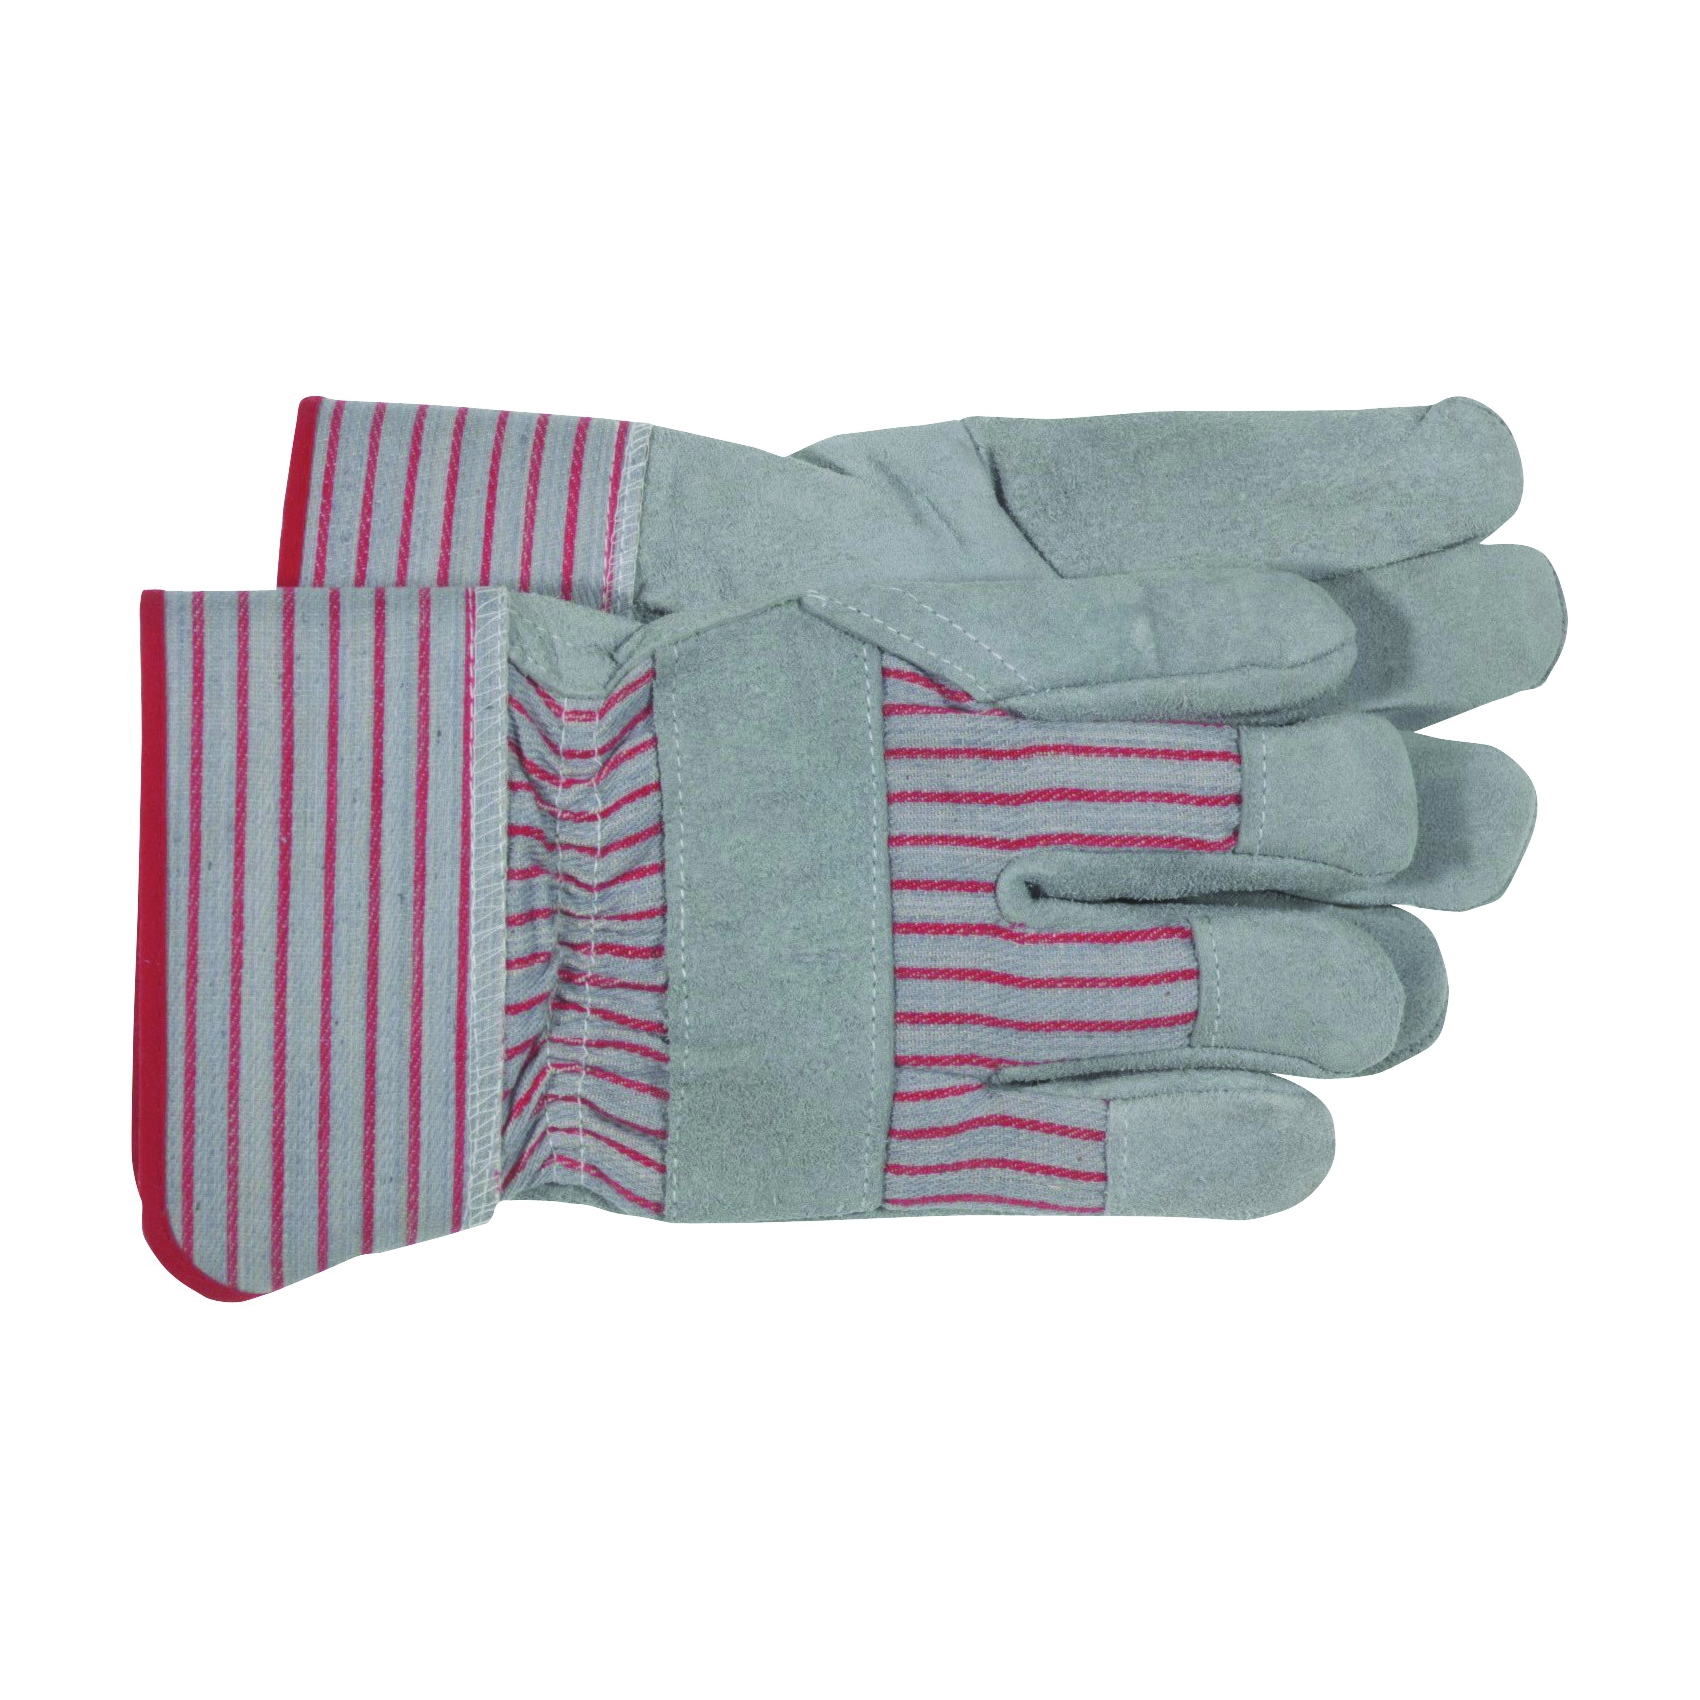 Picture of BOSS 4093 Driver Gloves, Men's, L, Wing Thumb, Pasted Safety Cuff, Blue/Gray